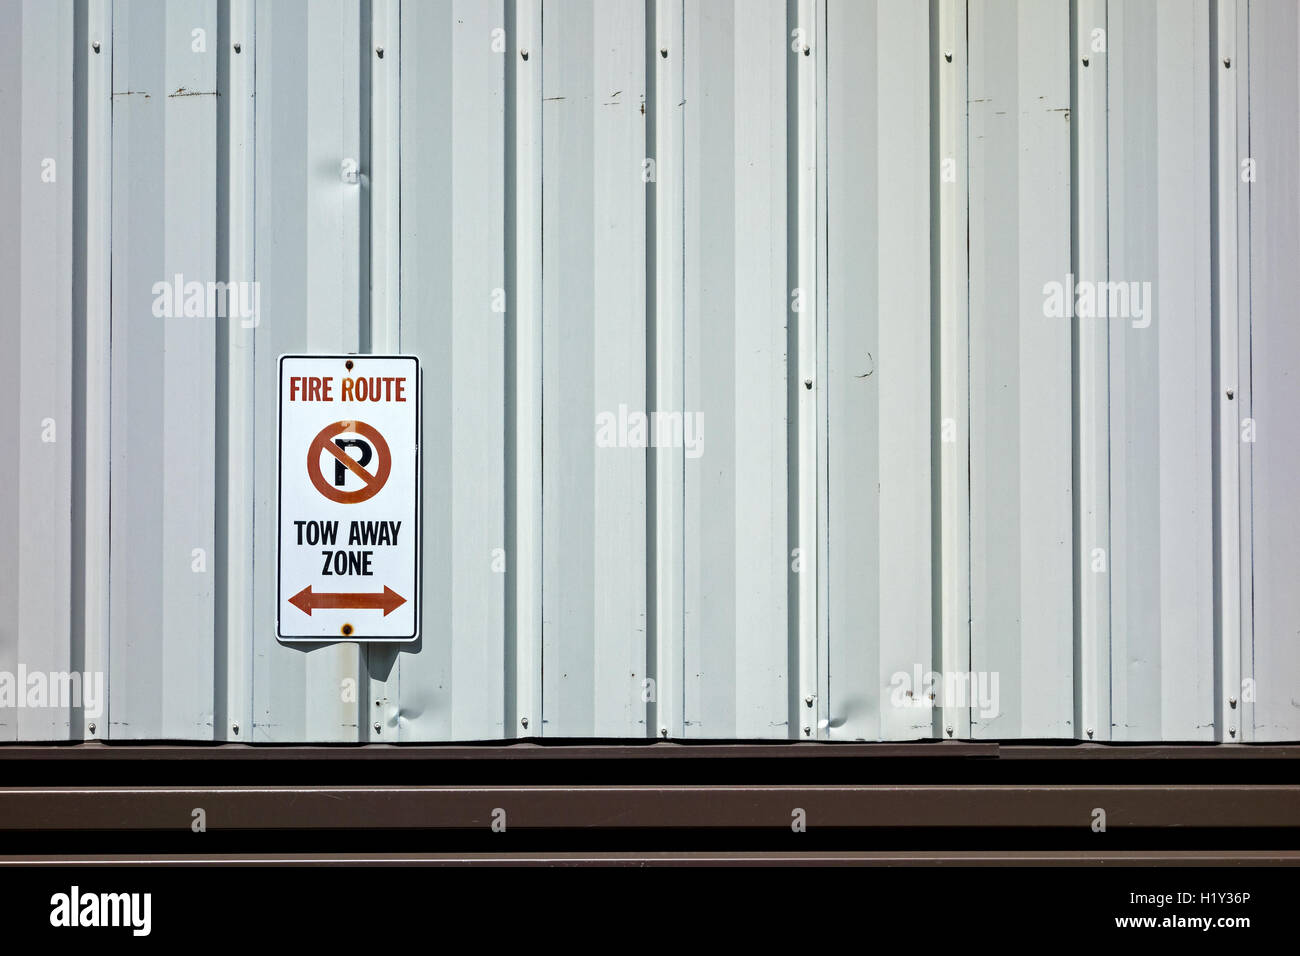 Fire Route No Parking sign Stock Photo